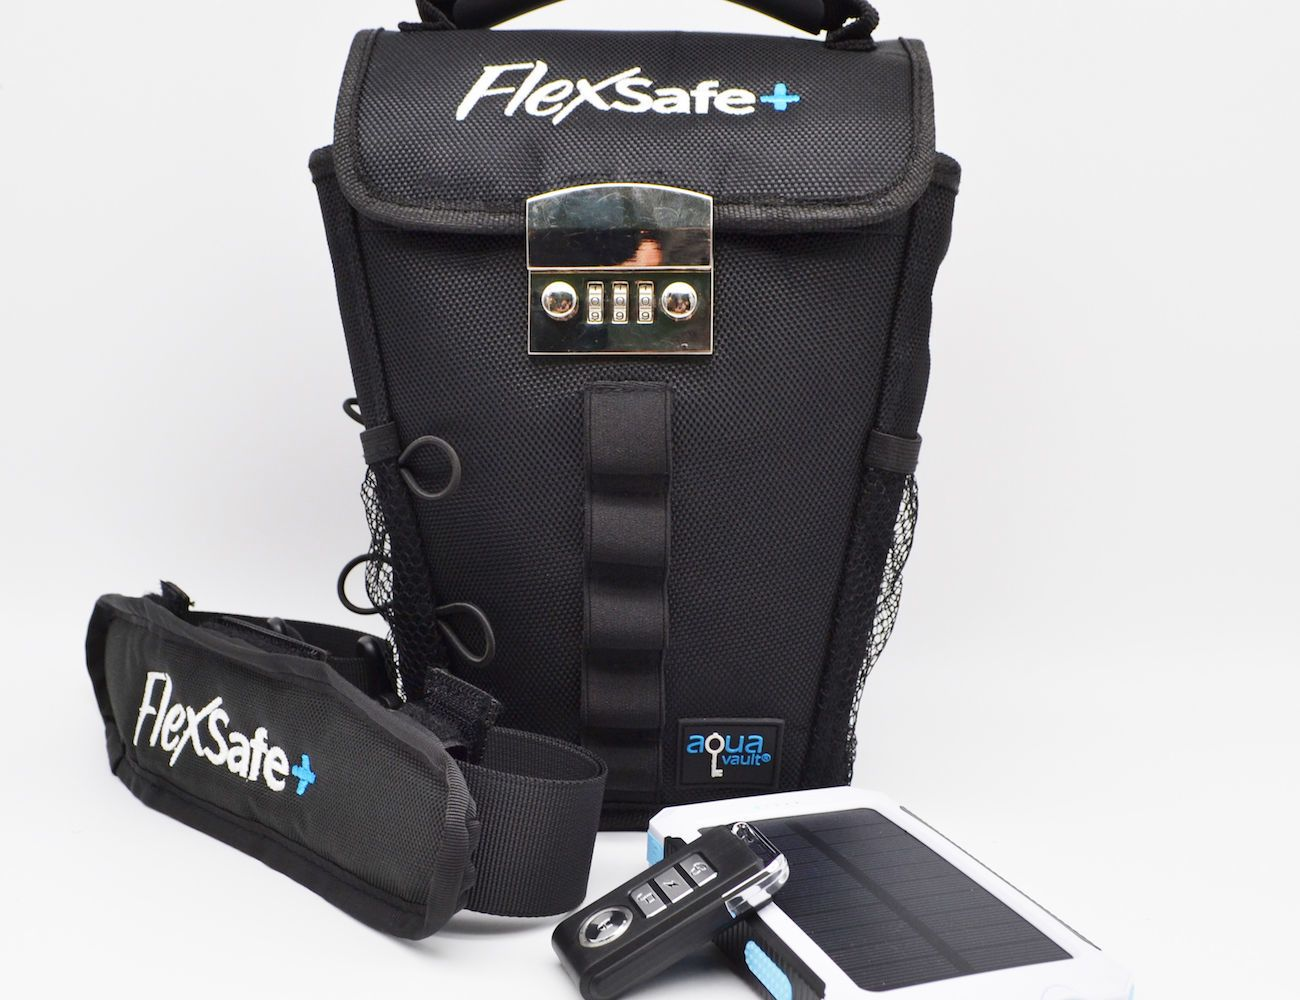 FlexSafe+ Portable Smart Travel Safe